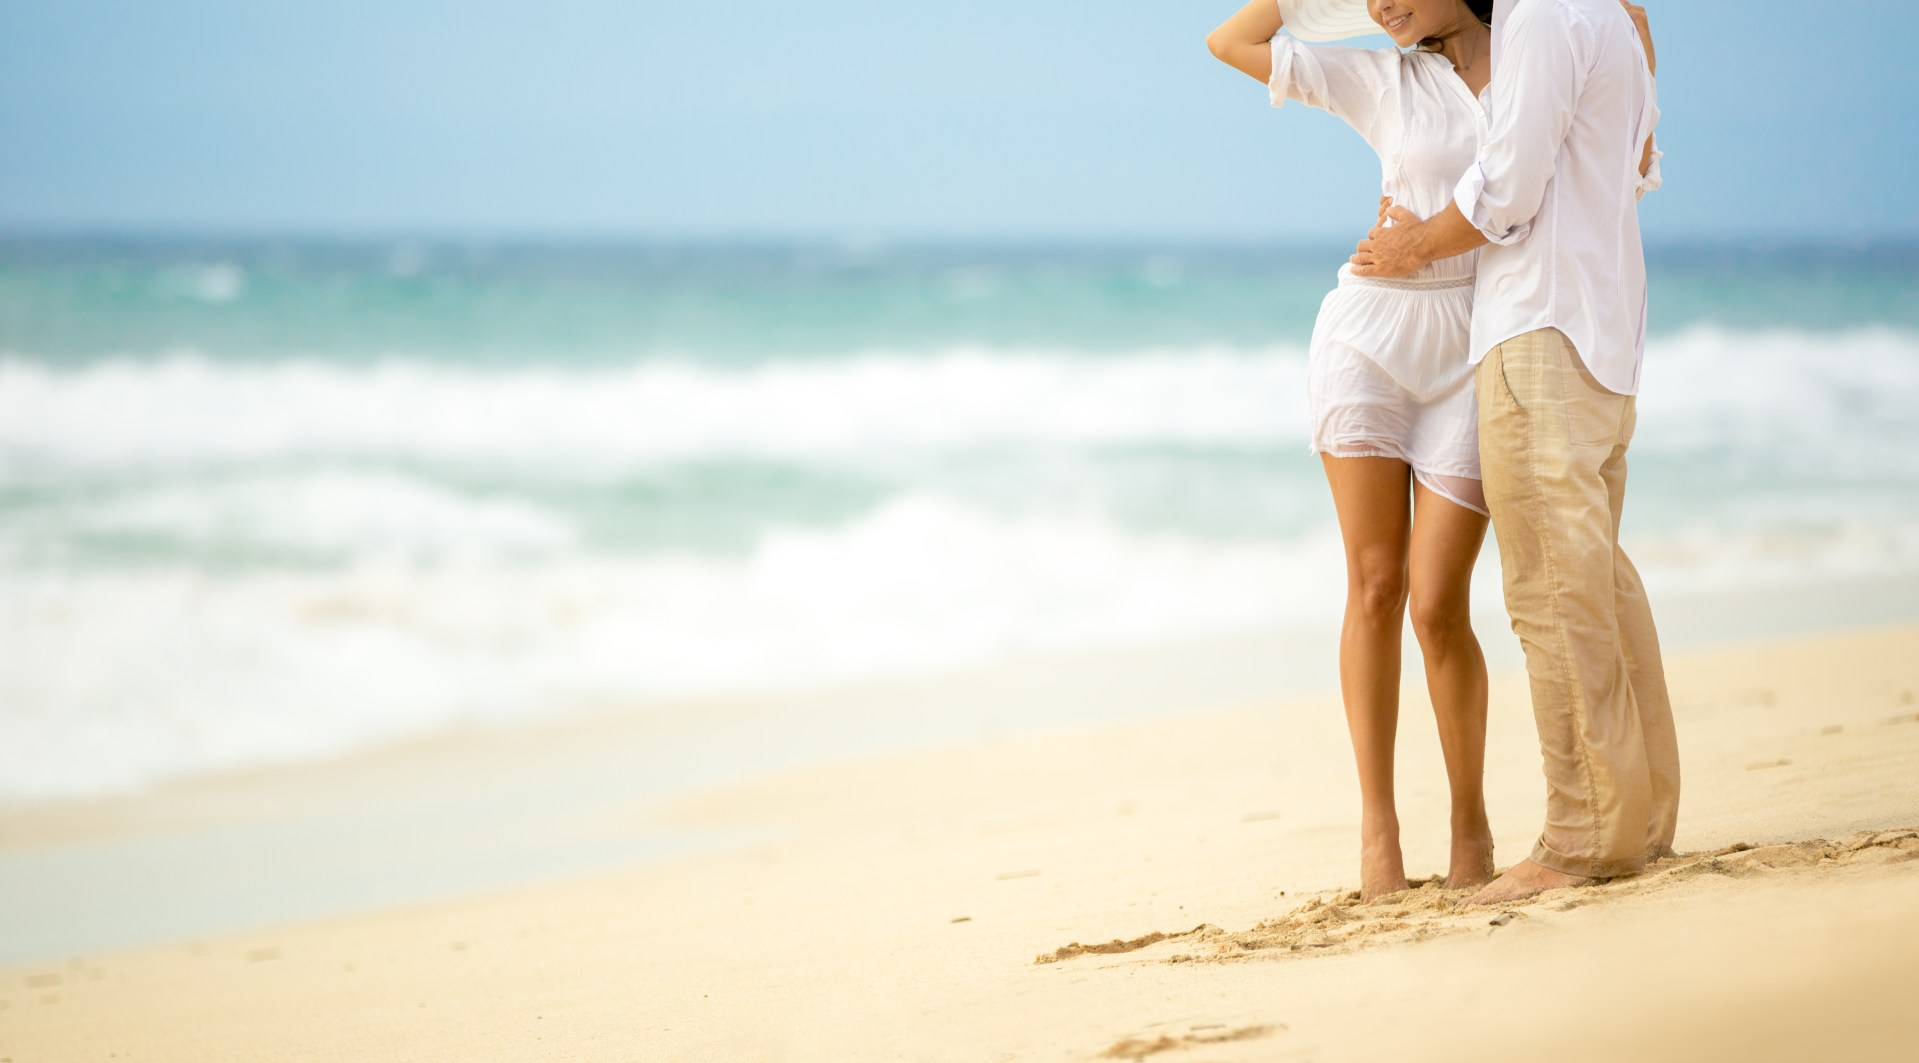 Handy tips to streamline summer travel and fertility treatment